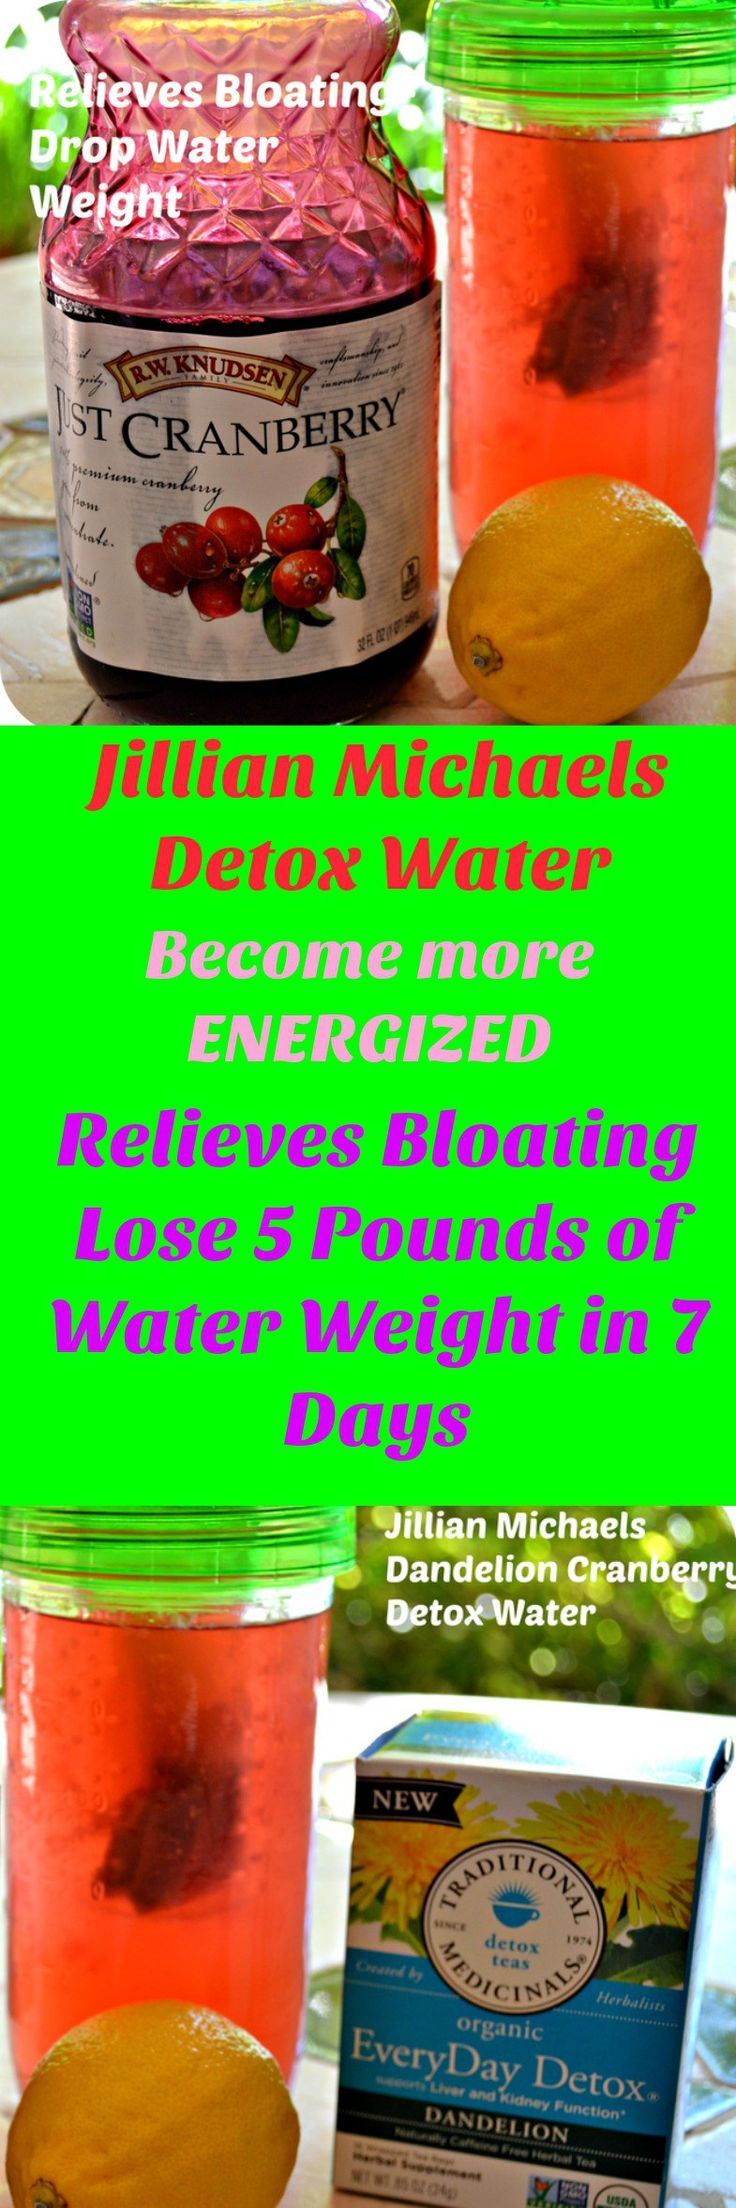 Jillian Michaels 7 Day Detox Water. Lose 5 pounds of water weight in 7 days.